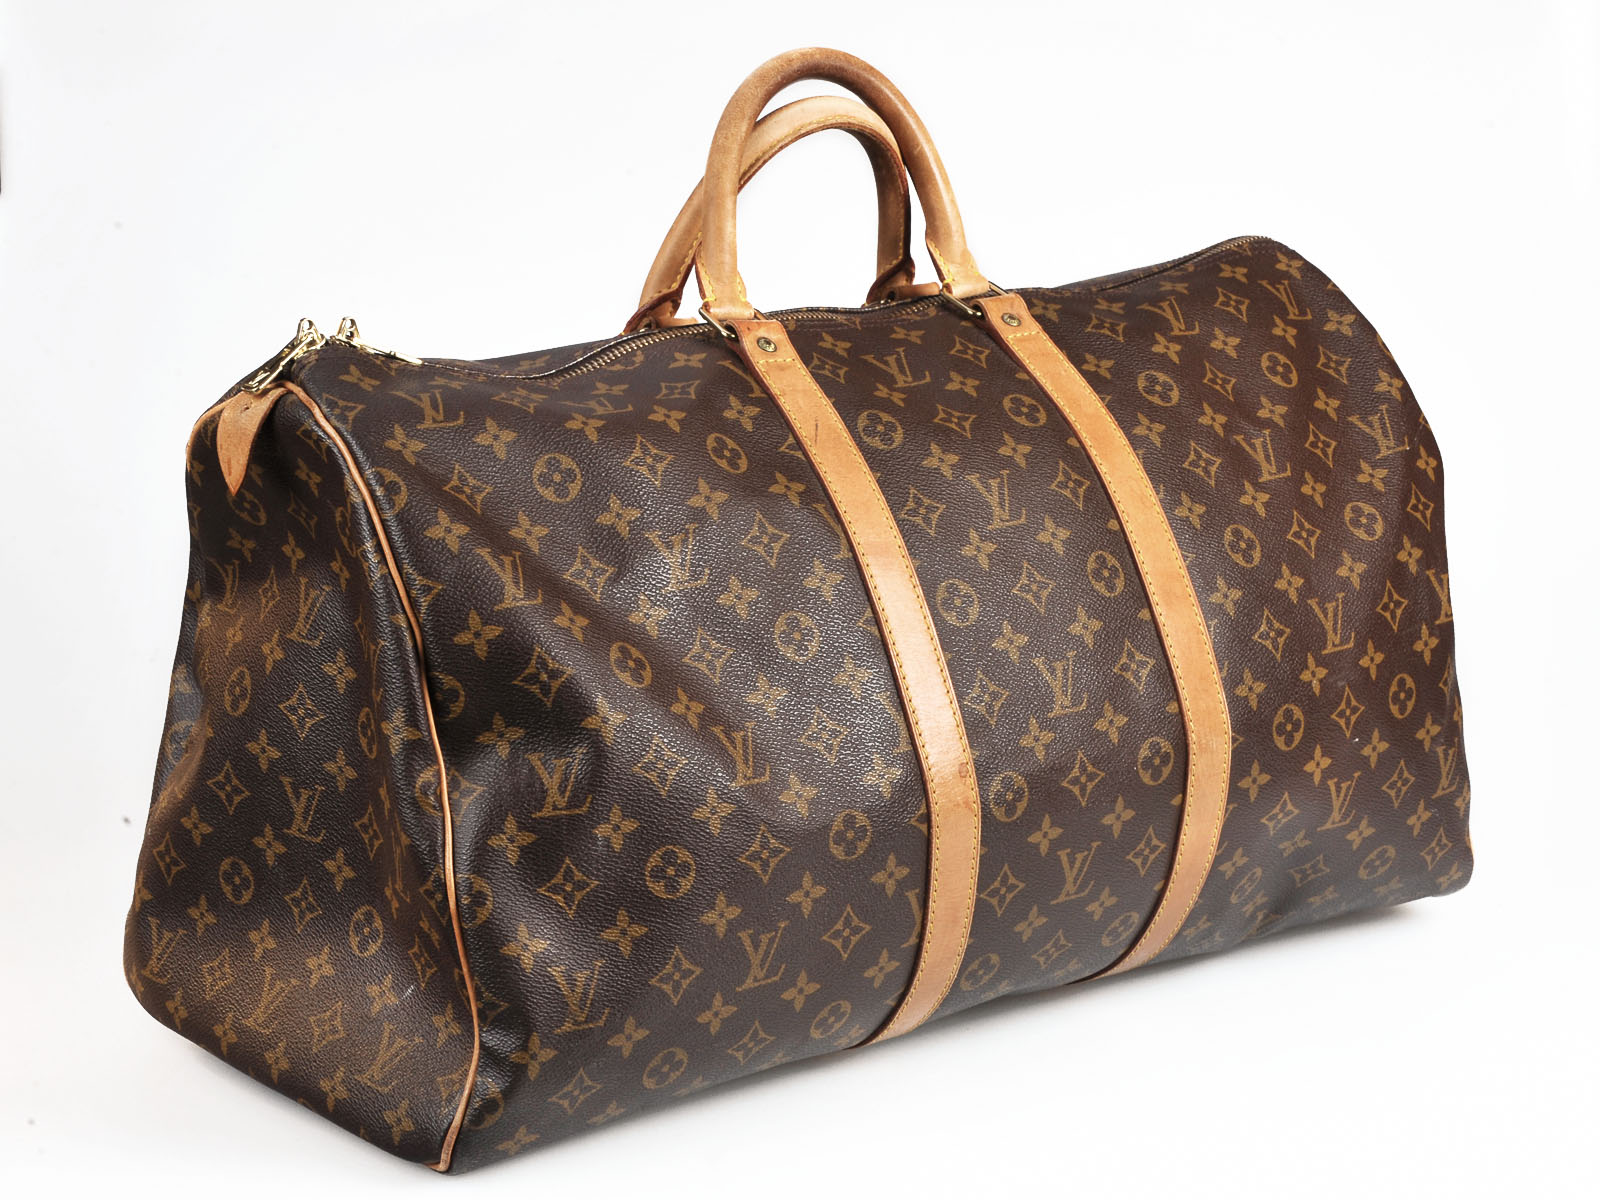 Vintage Louis Vuitton Monogram 50 Keepall Travel Bag